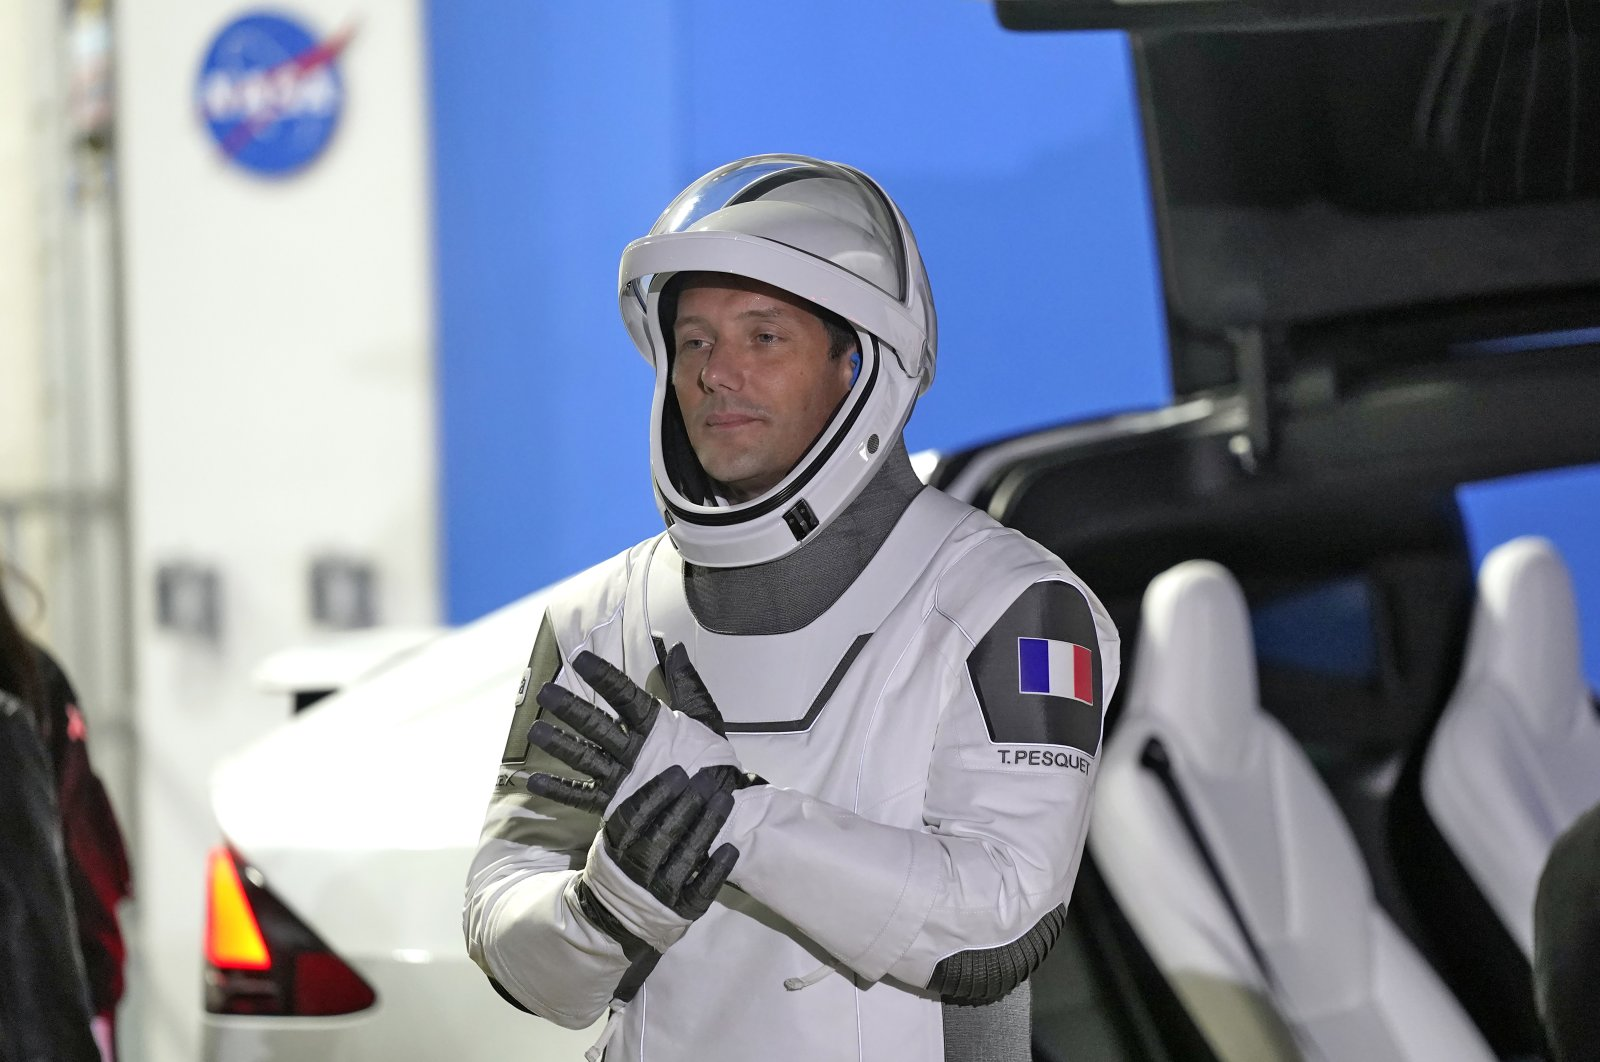 European Space Agency astronaut Thomas Pesquet of France, adjusts his glove as he talks to family and friends before a launch attempt at the Kennedy Space Center in Cape Canaveral, Fla., April 23, 2021. (AP File Photo)